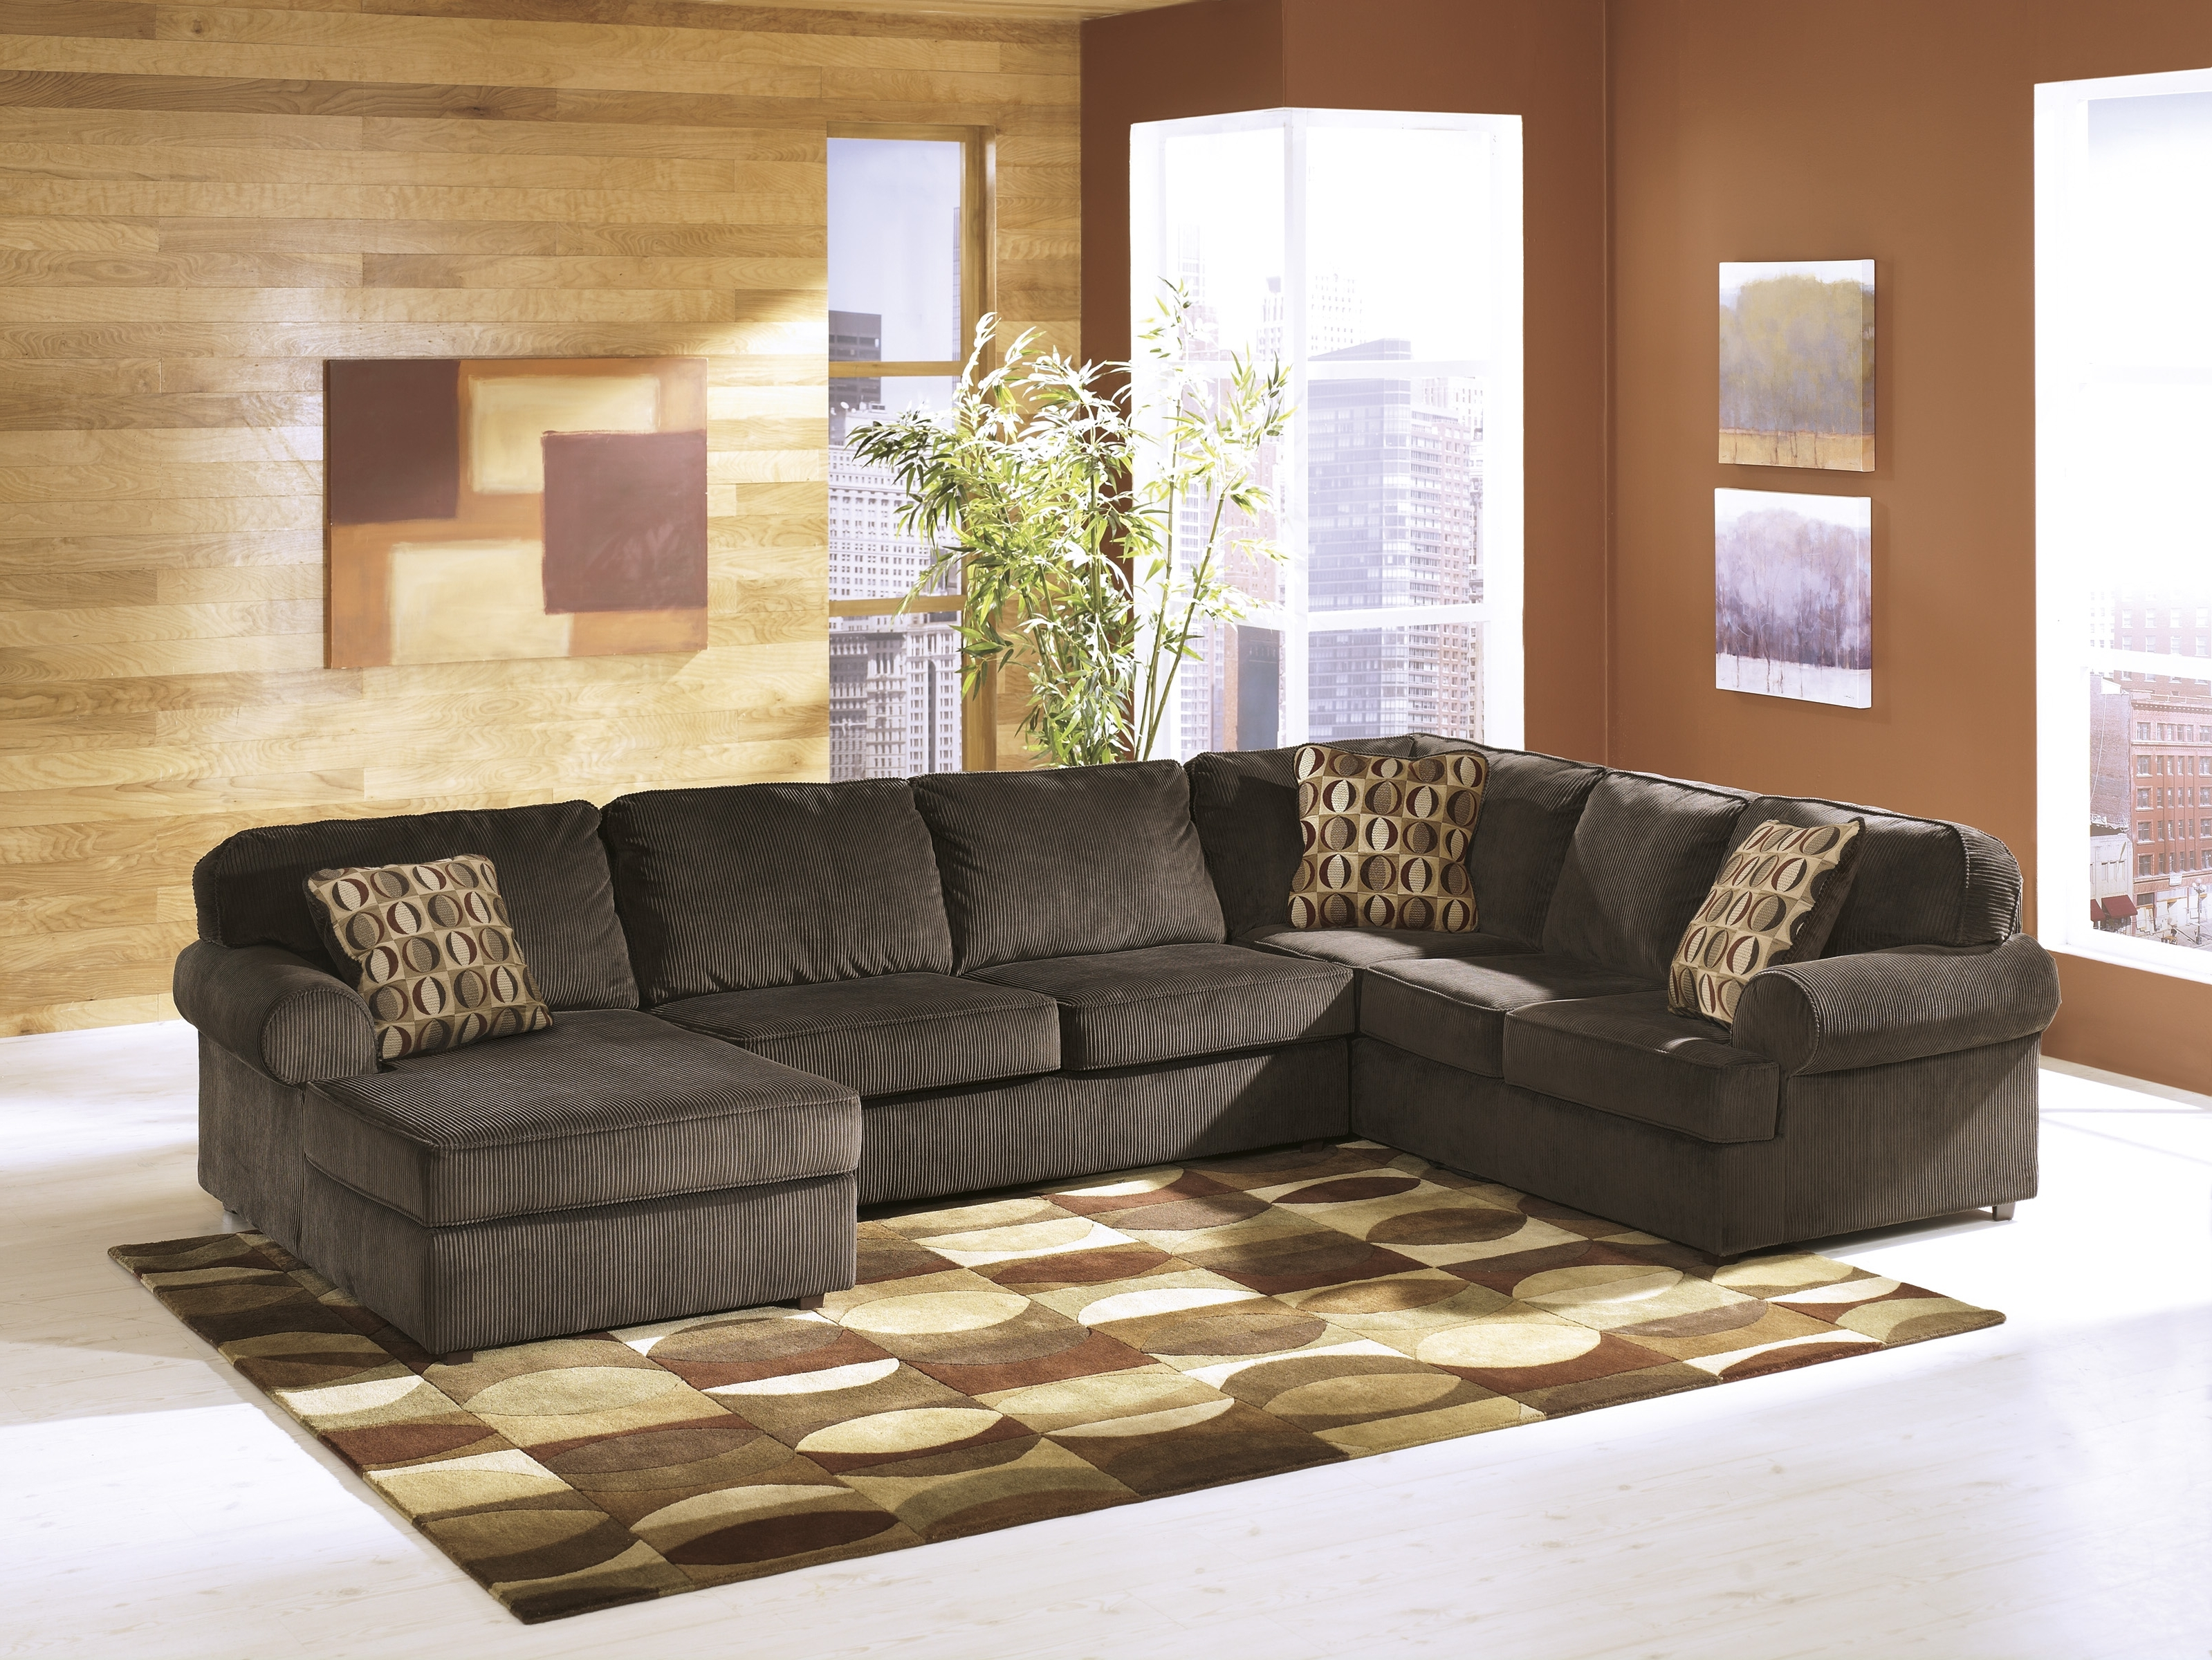 Most Recently Released Wichita Ks Sectional Sofas Throughout Excellent Ideas Easy Home Furniture Rental Tarlac Edmonton Wichita (View 10 of 15)